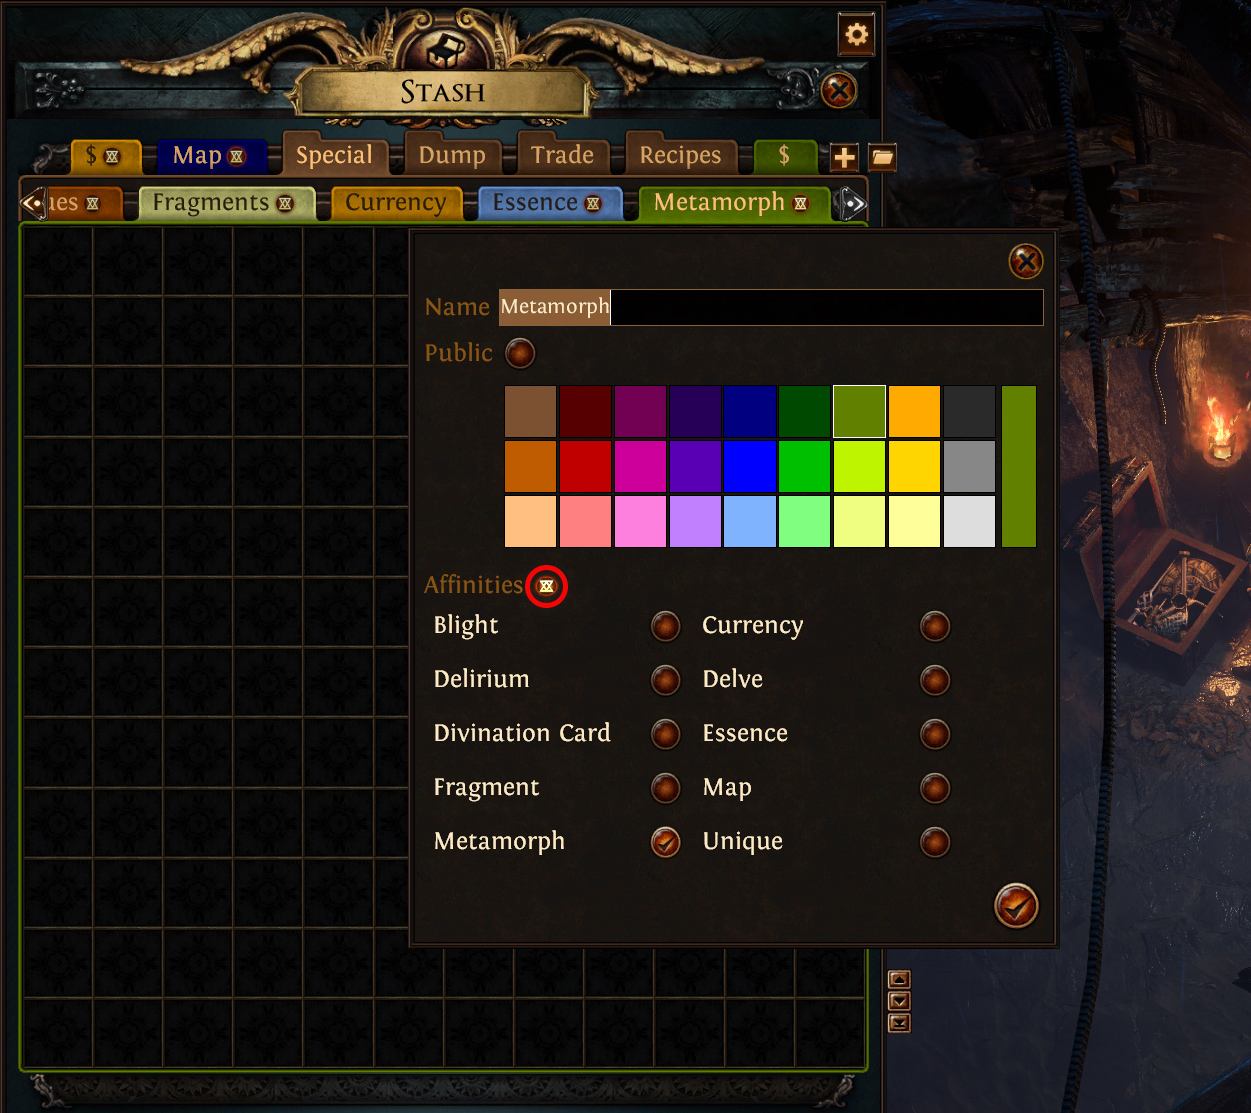 New Stash Tab Folders And Affinities System Path Of Exile Dev Tracker Devtrackers Gg Empower support, enhance support, portal. new stash tab folders and affinities